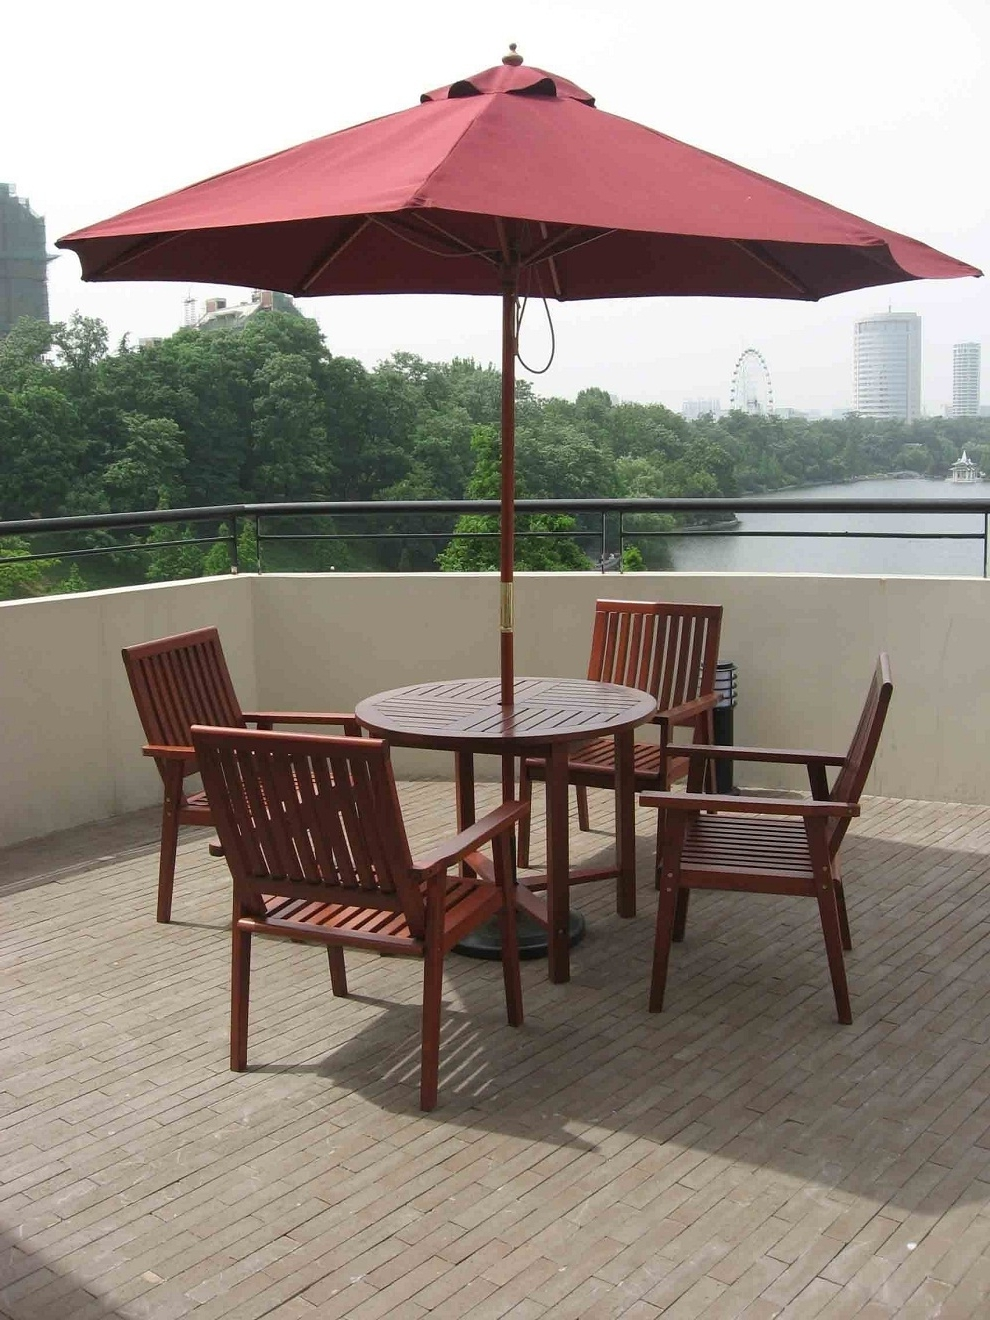 Latest Patio Furniture With Umbrellas Throughout Gorgeous Patio Table Umbrellas Patio Tables With Umbrella Ashery (Gallery 7 of 20)